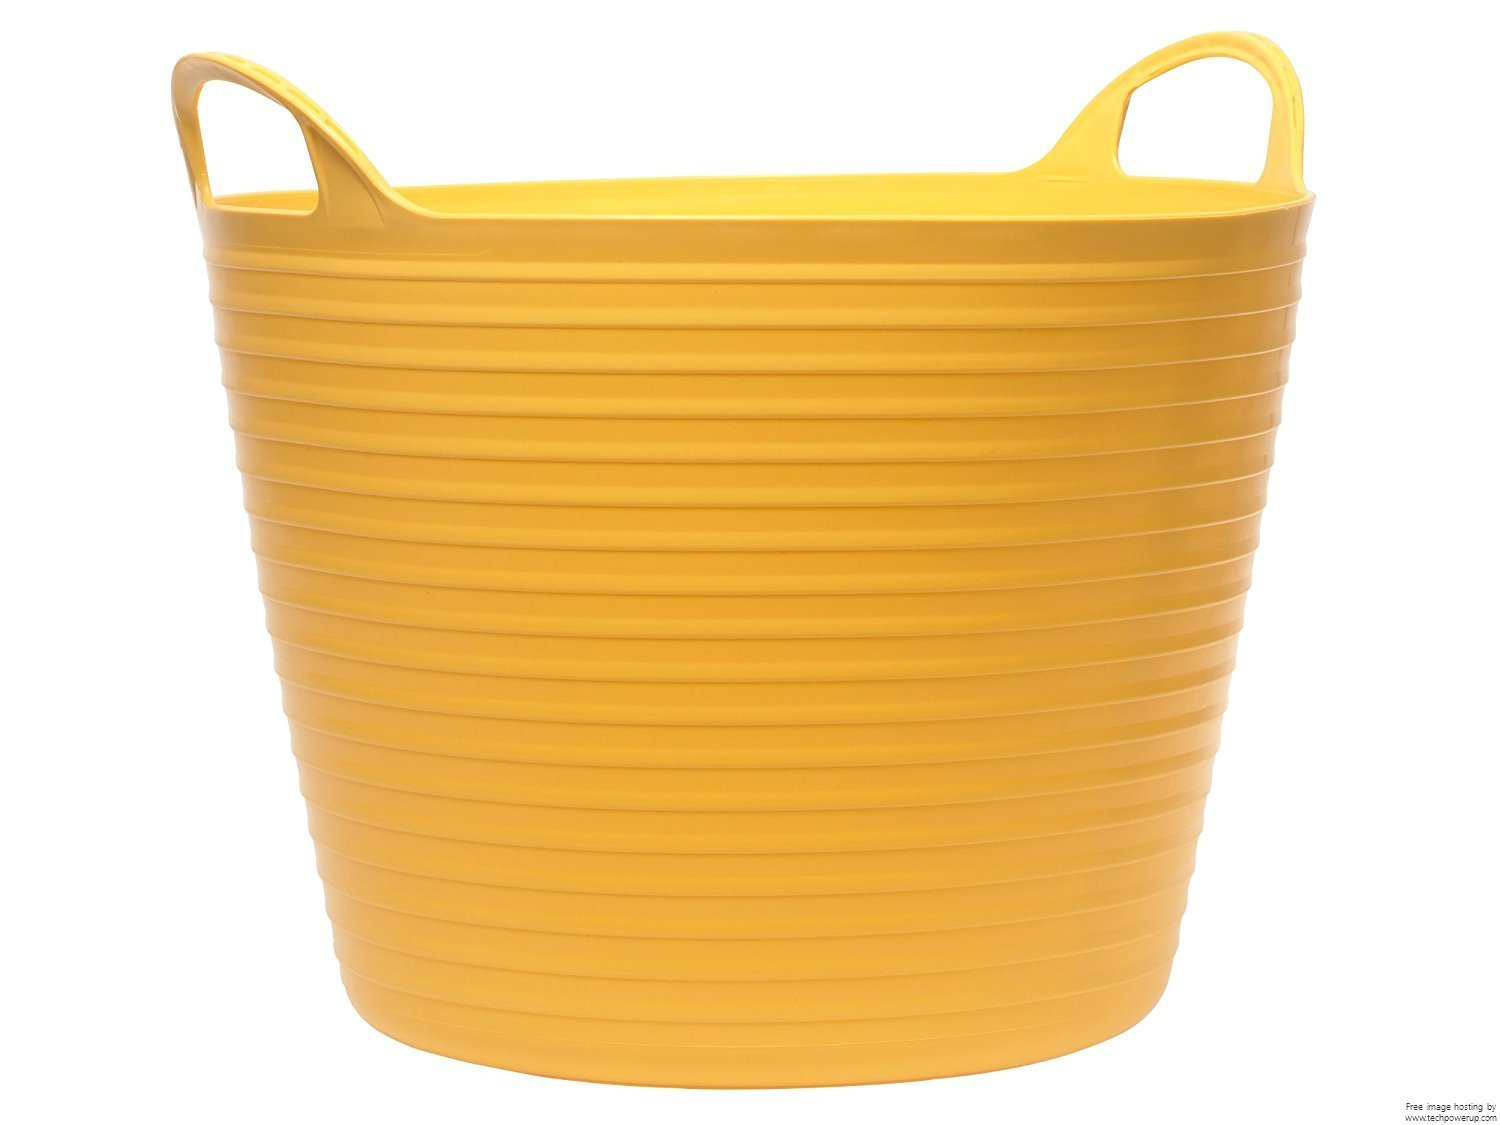 Faithfull FLEX15Y Polyethylene Flex Tub 28L Yellow FAIFLEX28Y